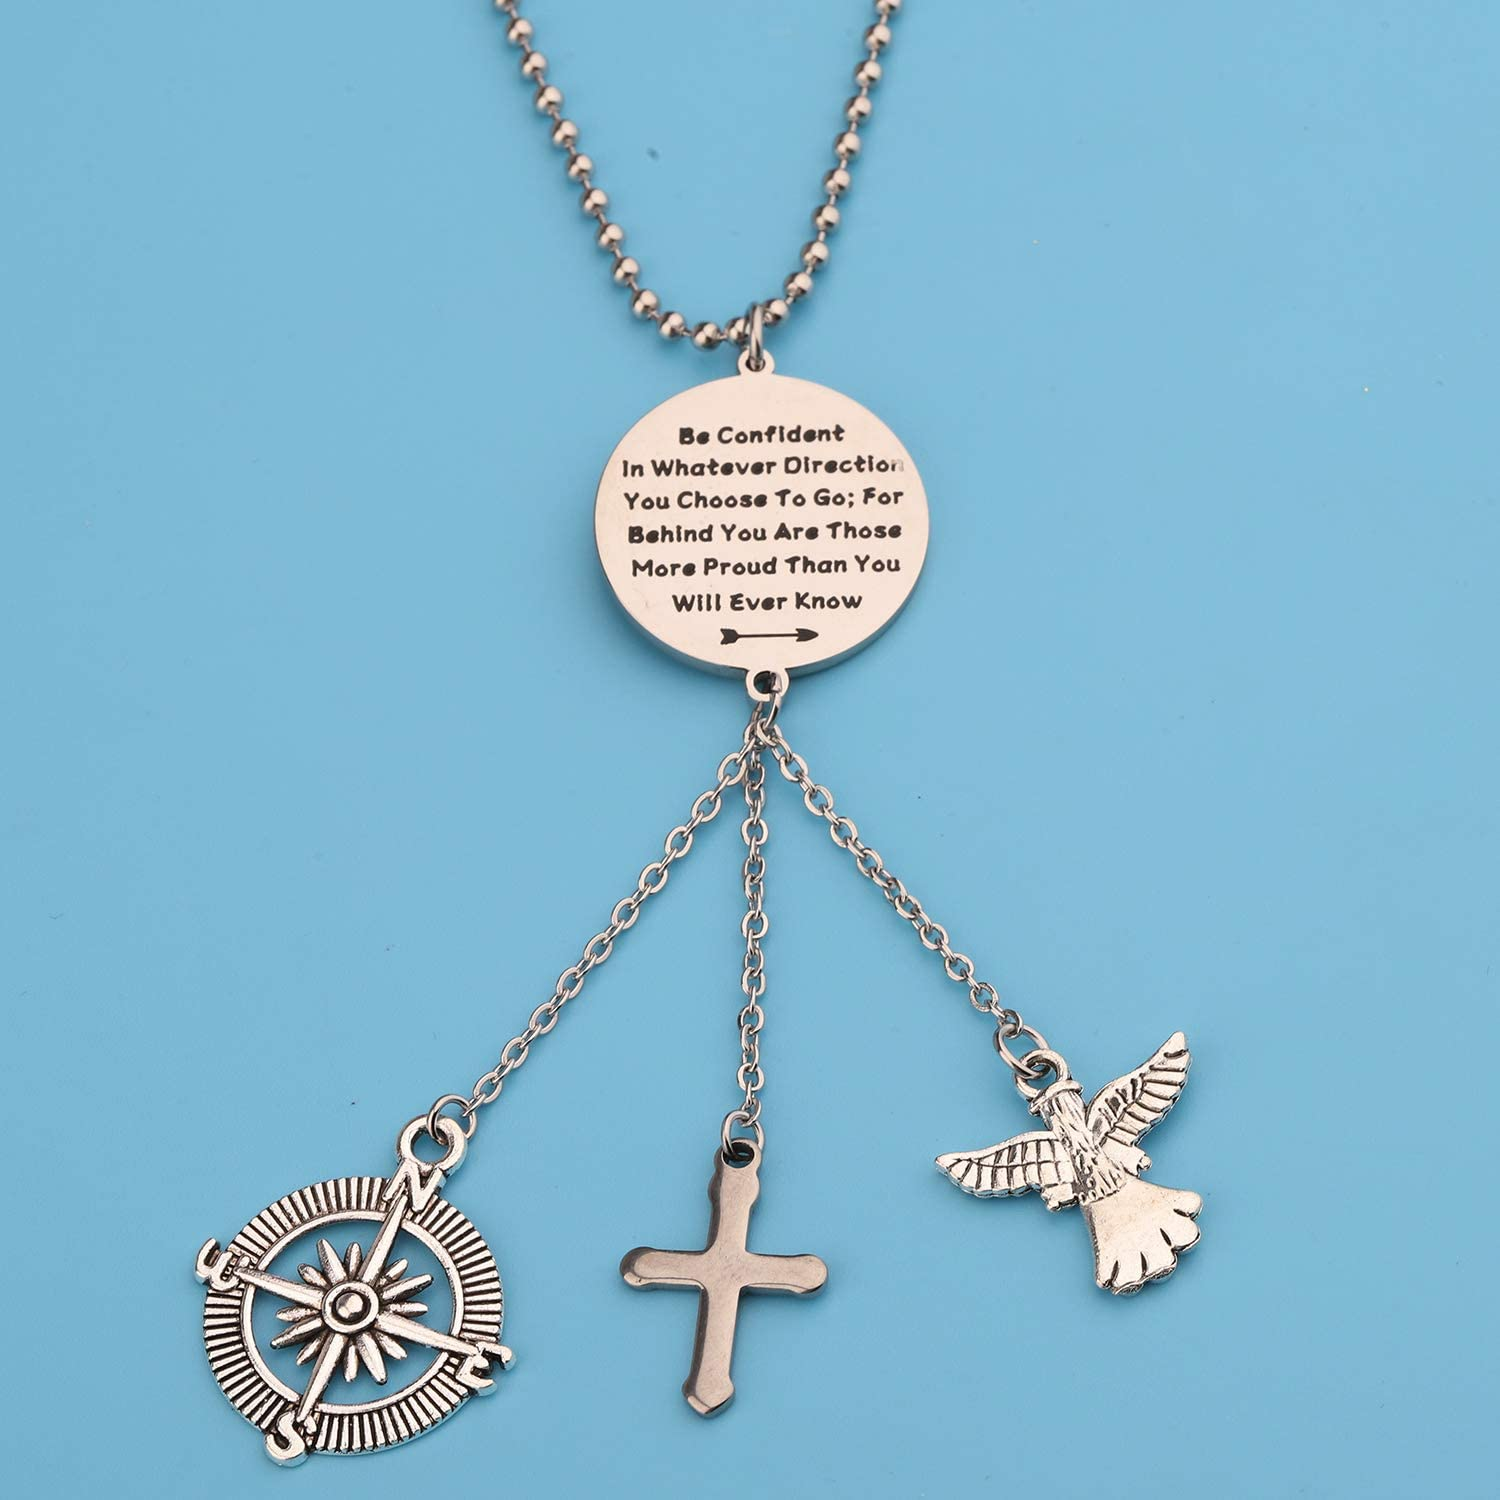 LQRI Guardian Angel Cross Car Charms for Rear View Mirror Be Confident in Whatever Direction You Choose to Go Car Hanging Ornament Car Interior Pendant Mirror Charms